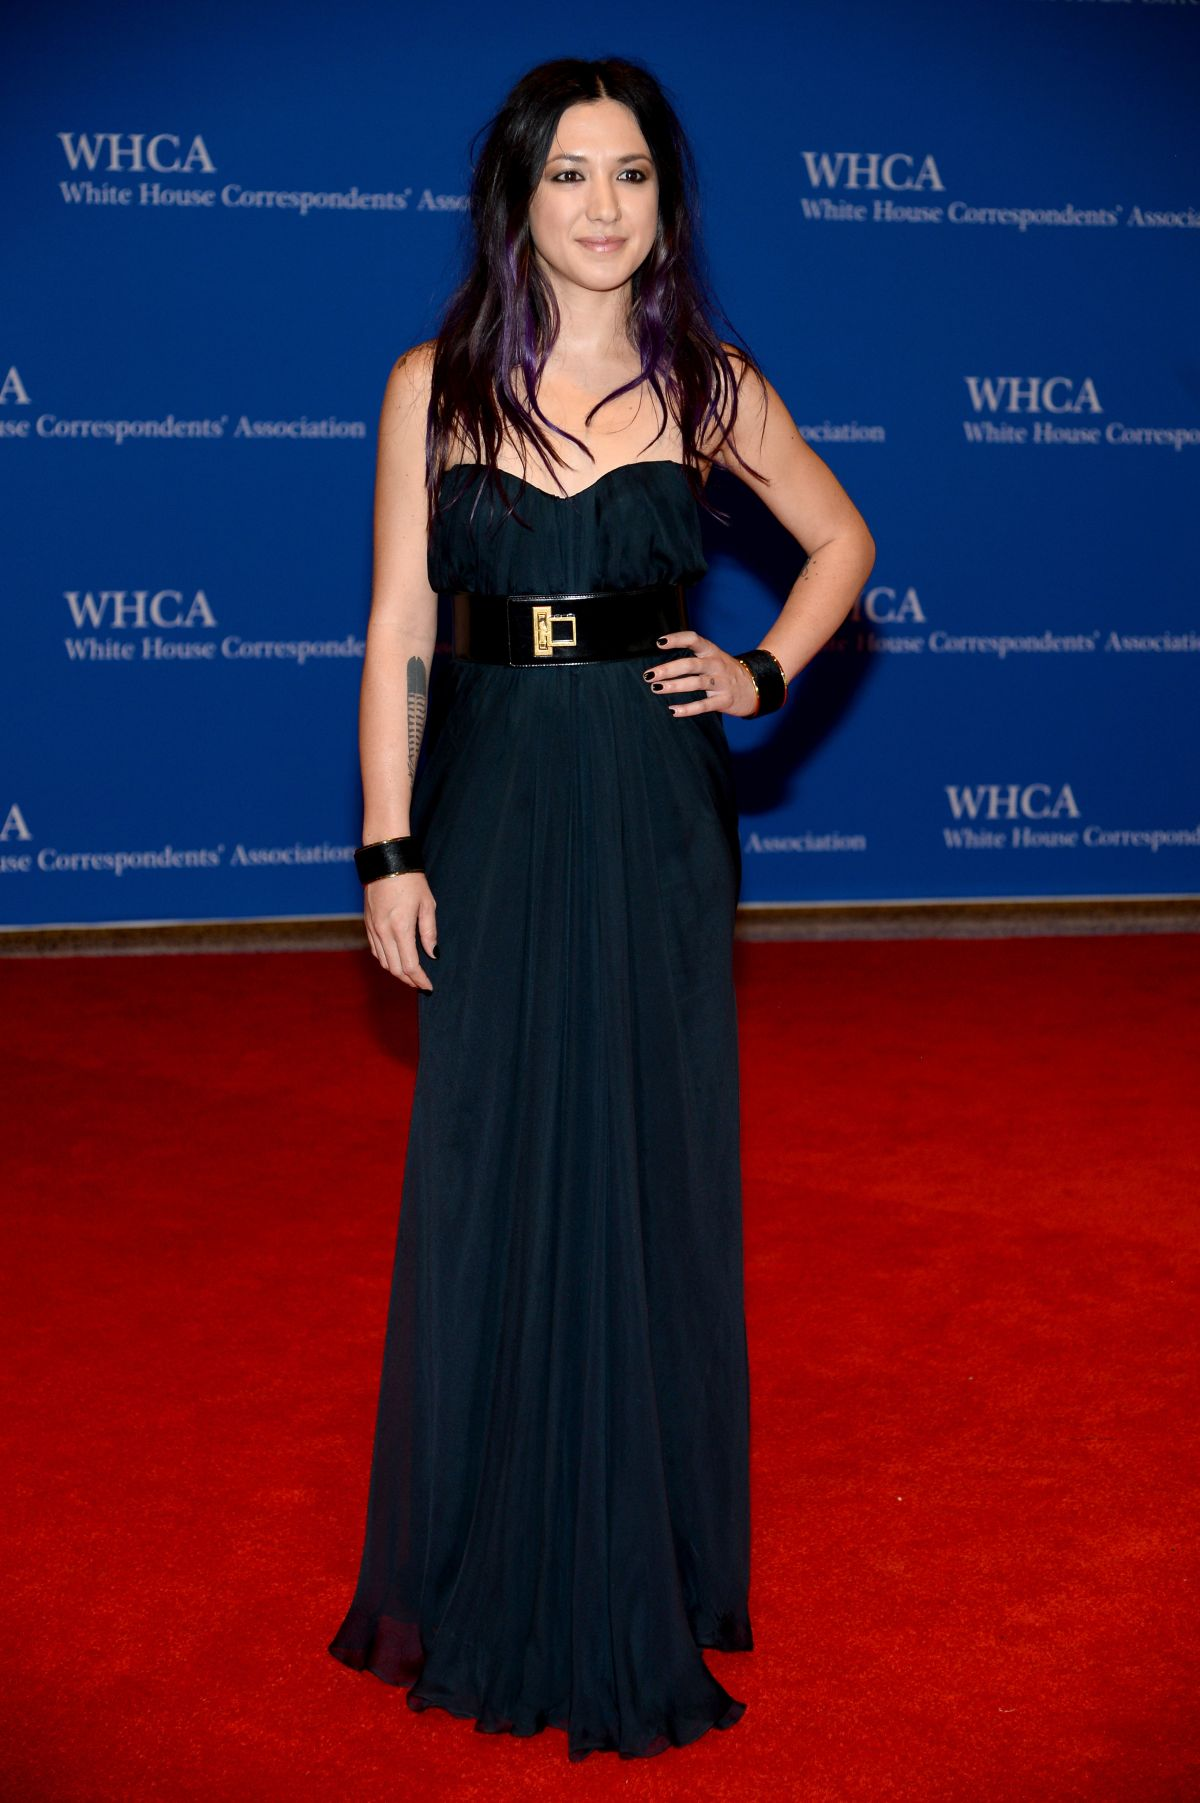 MICHELLE BRANCH at White House Correspondents Association Dinner 2014 in Washington